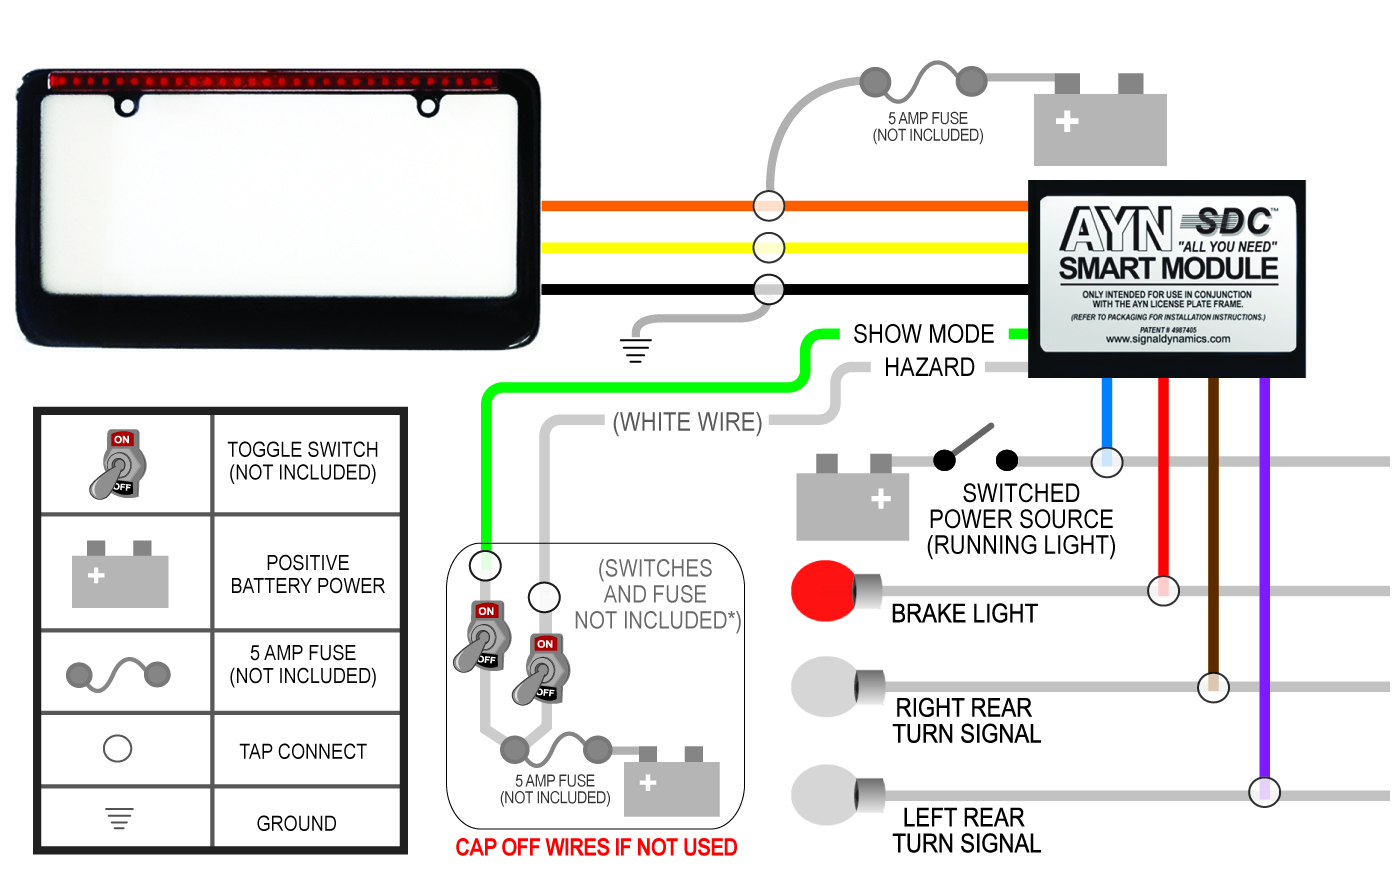 black auto wiring diagram?t=1399476781 black ayn automotive license plate frame & smart module combo Basic Turn Signal Wiring Diagram at pacquiaovsvargaslive.co